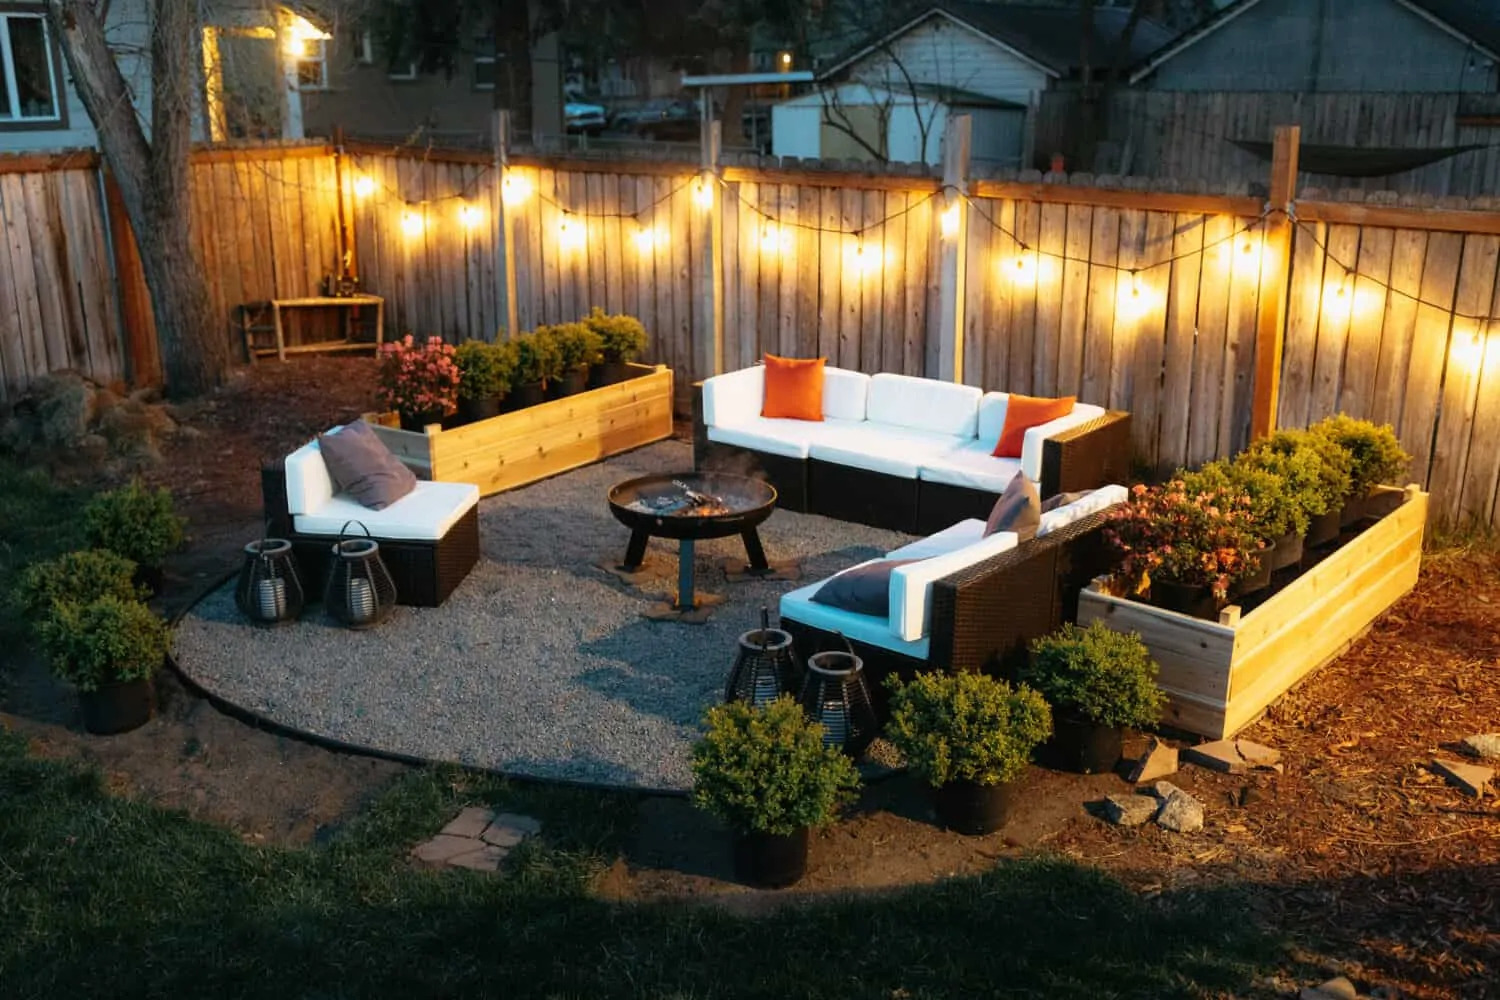 Outdoor firepit surrounded by white sofa with cushions and planters